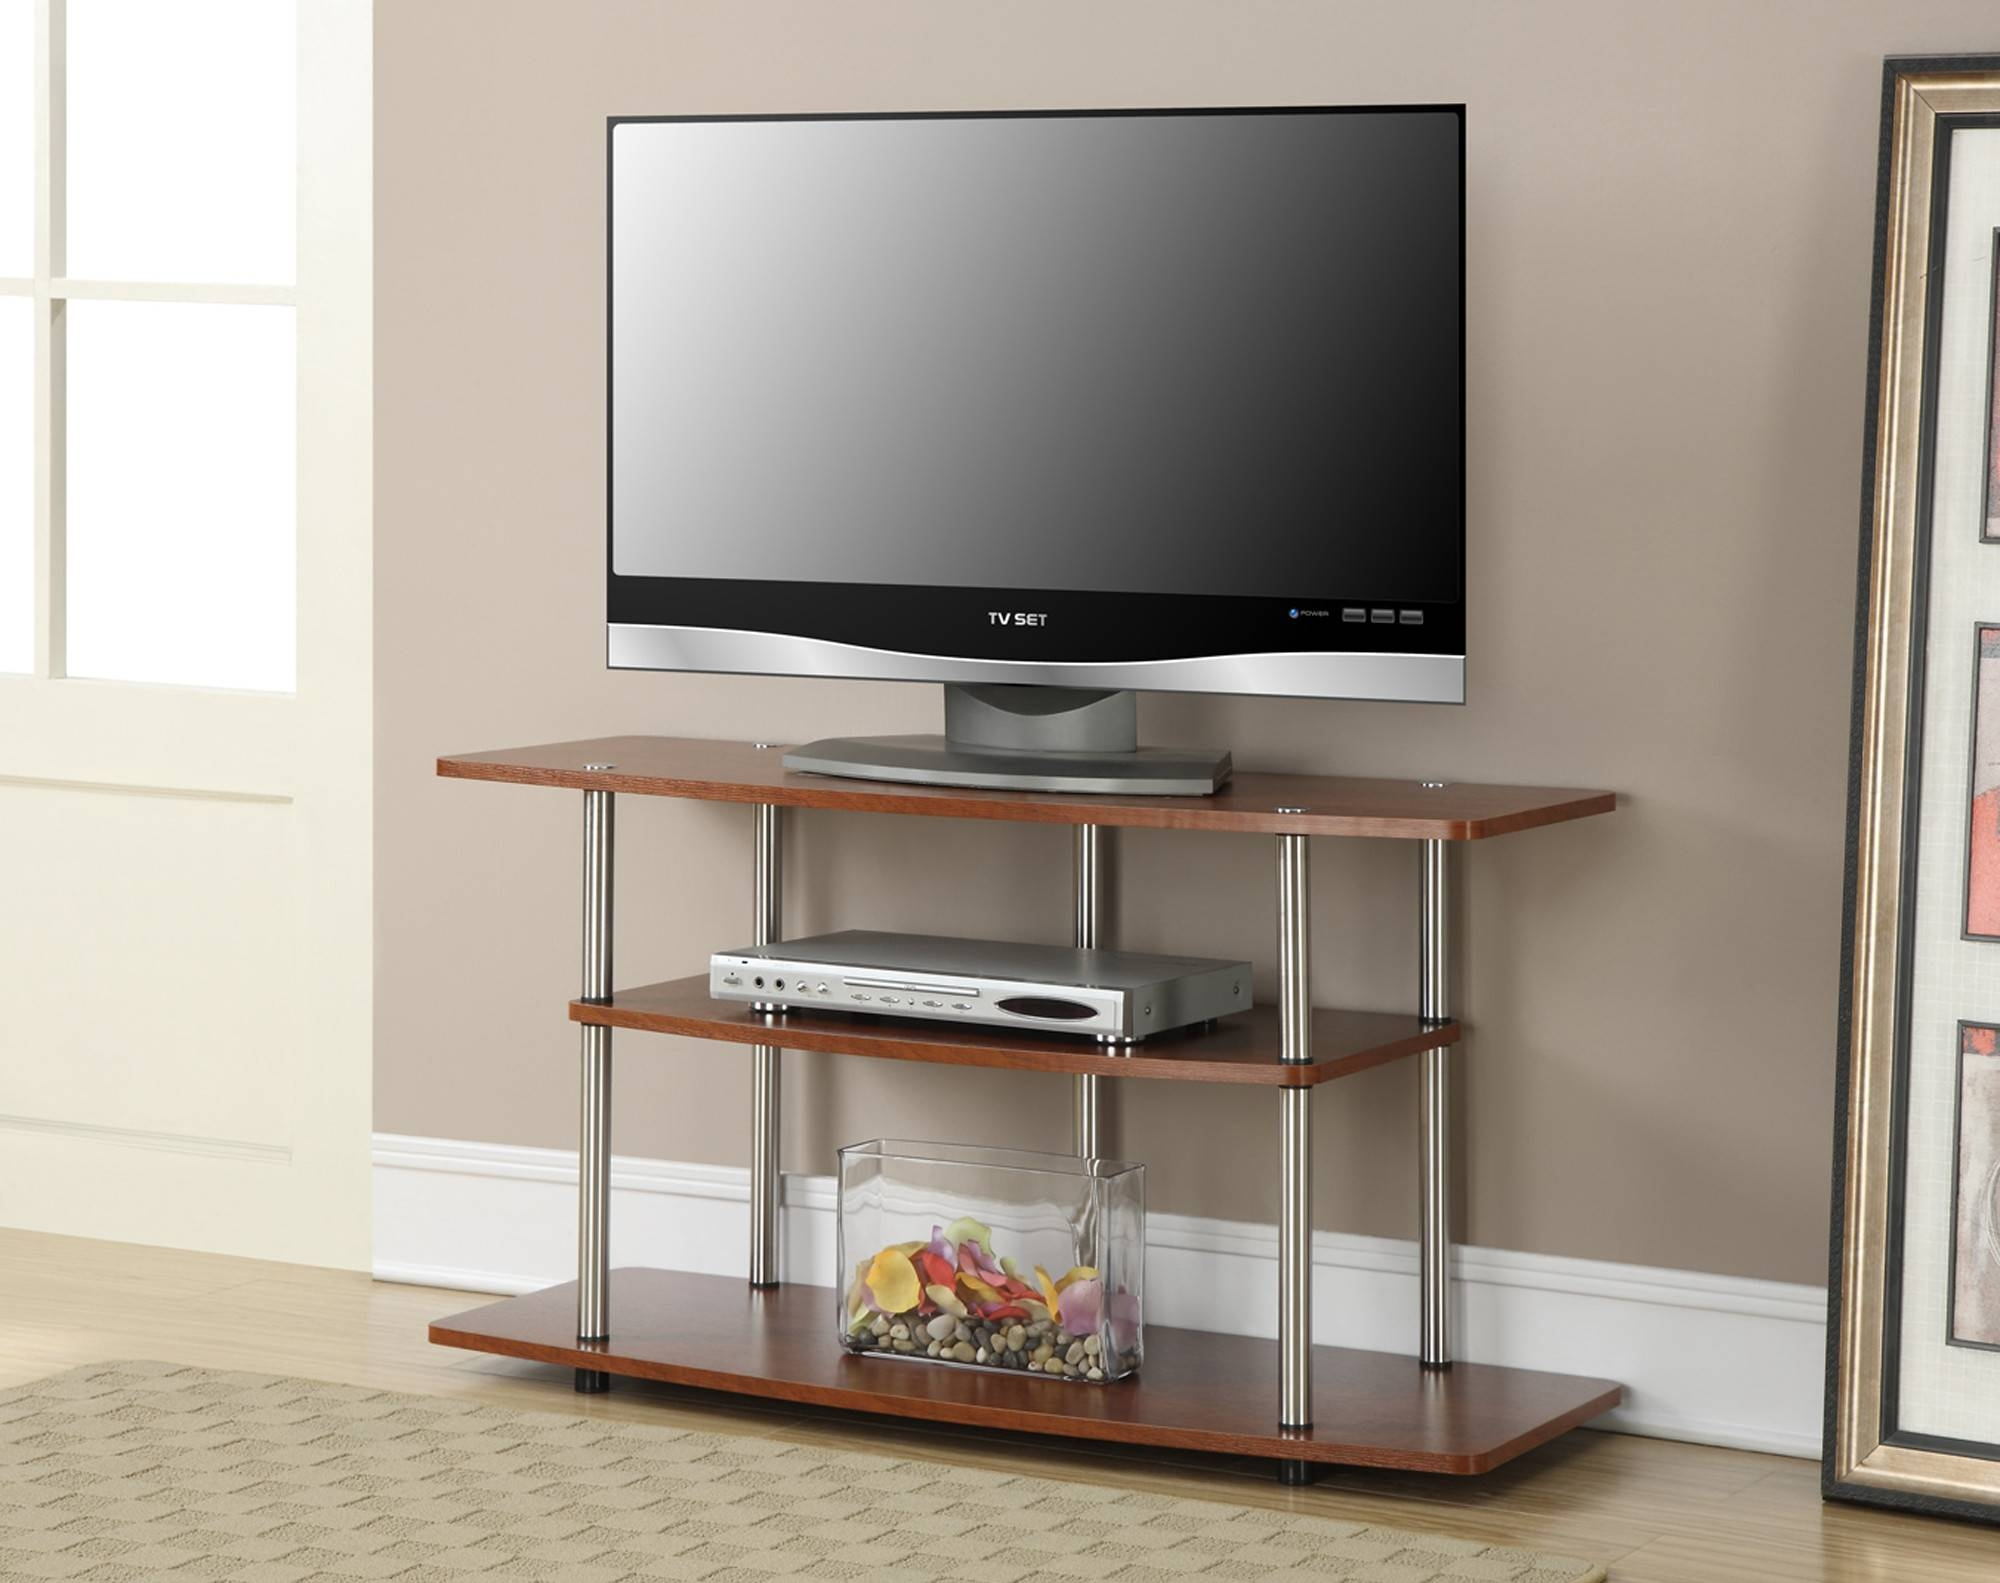 15 Best Ideas of Stylish Tv Cabinets